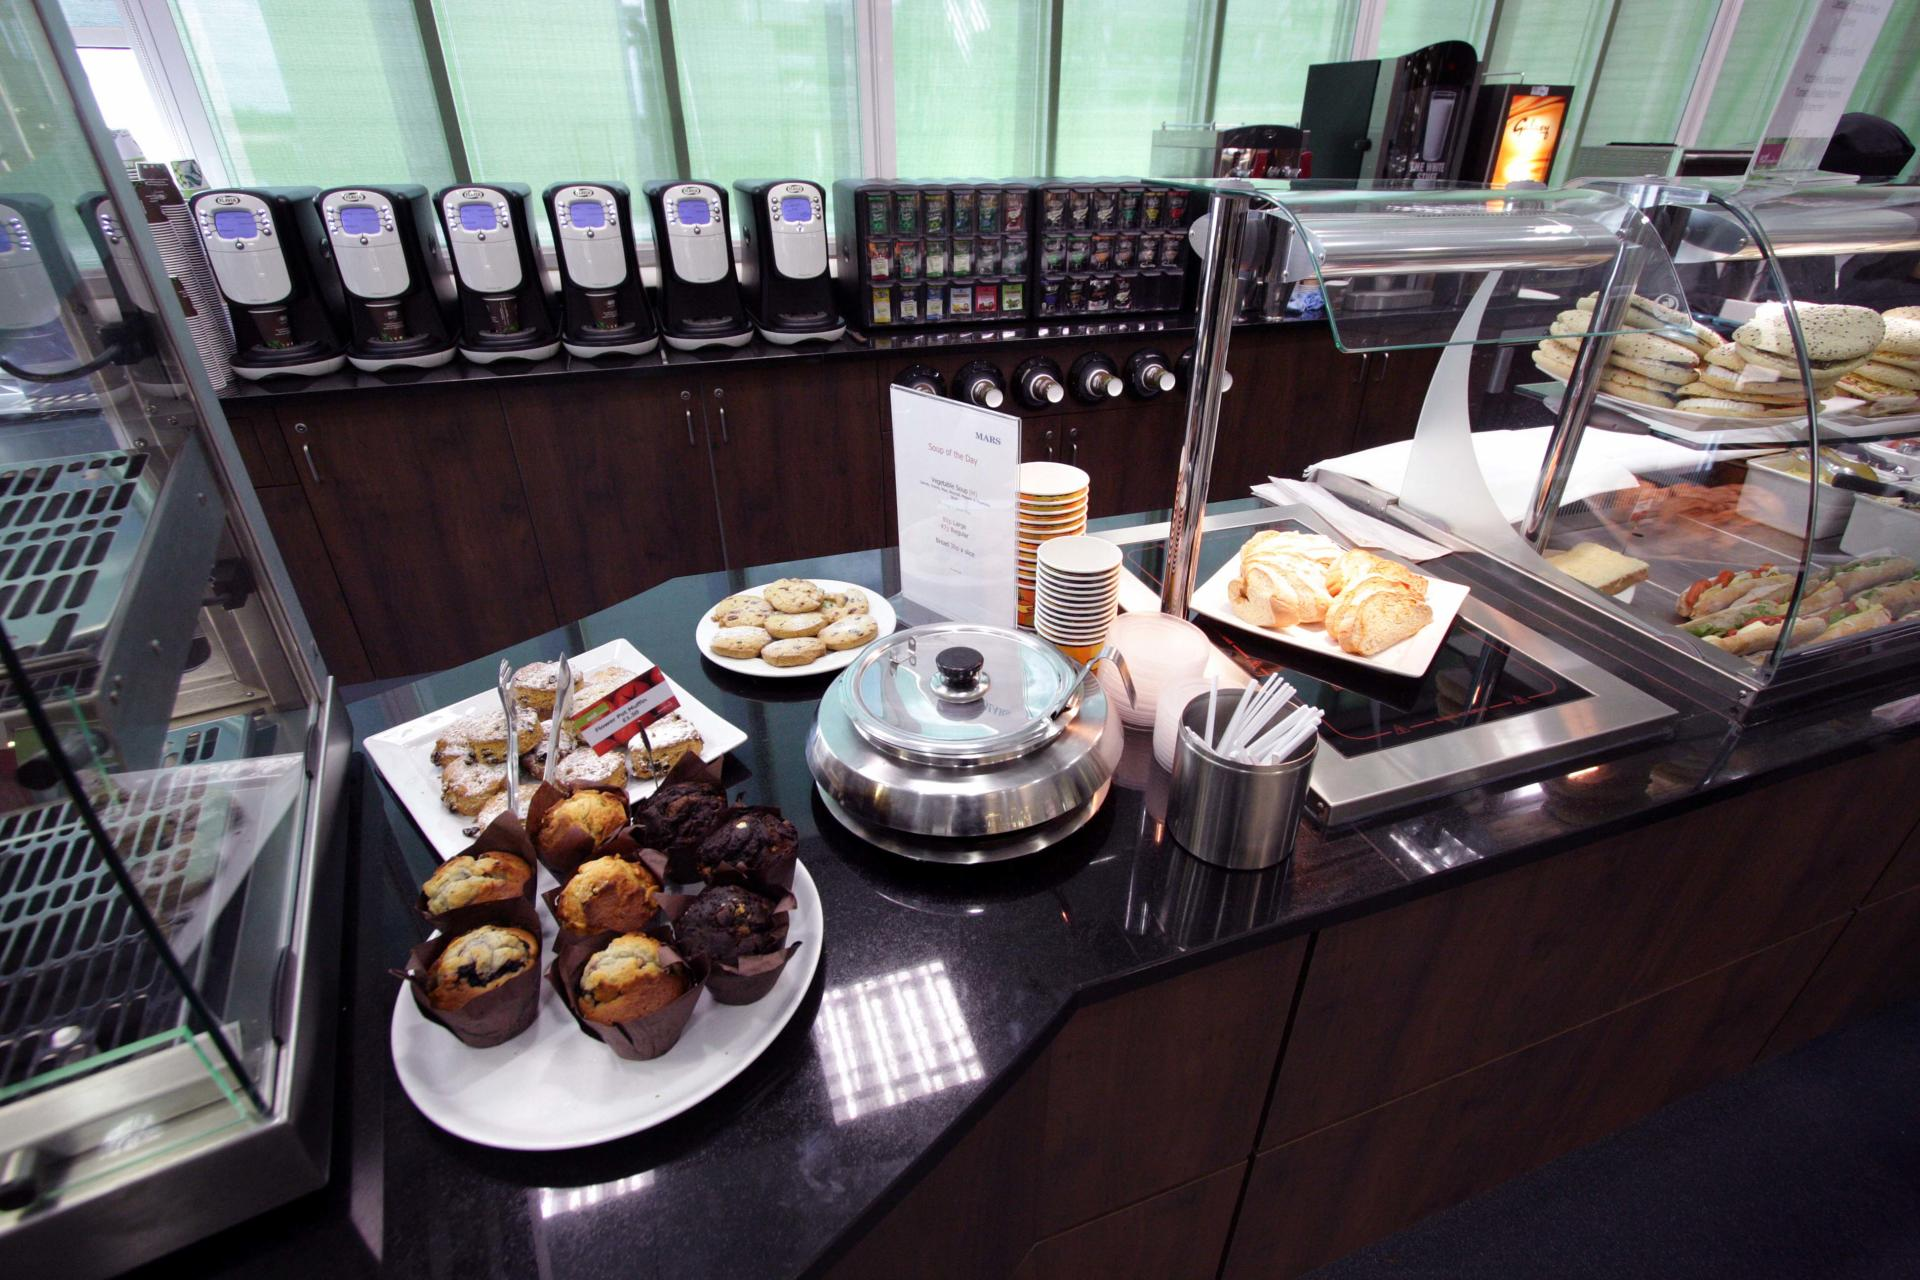 Mars-Sodexo-Slough-Staff-Severy-Front-of-house-Servery-Food-Display-spacecatering_2